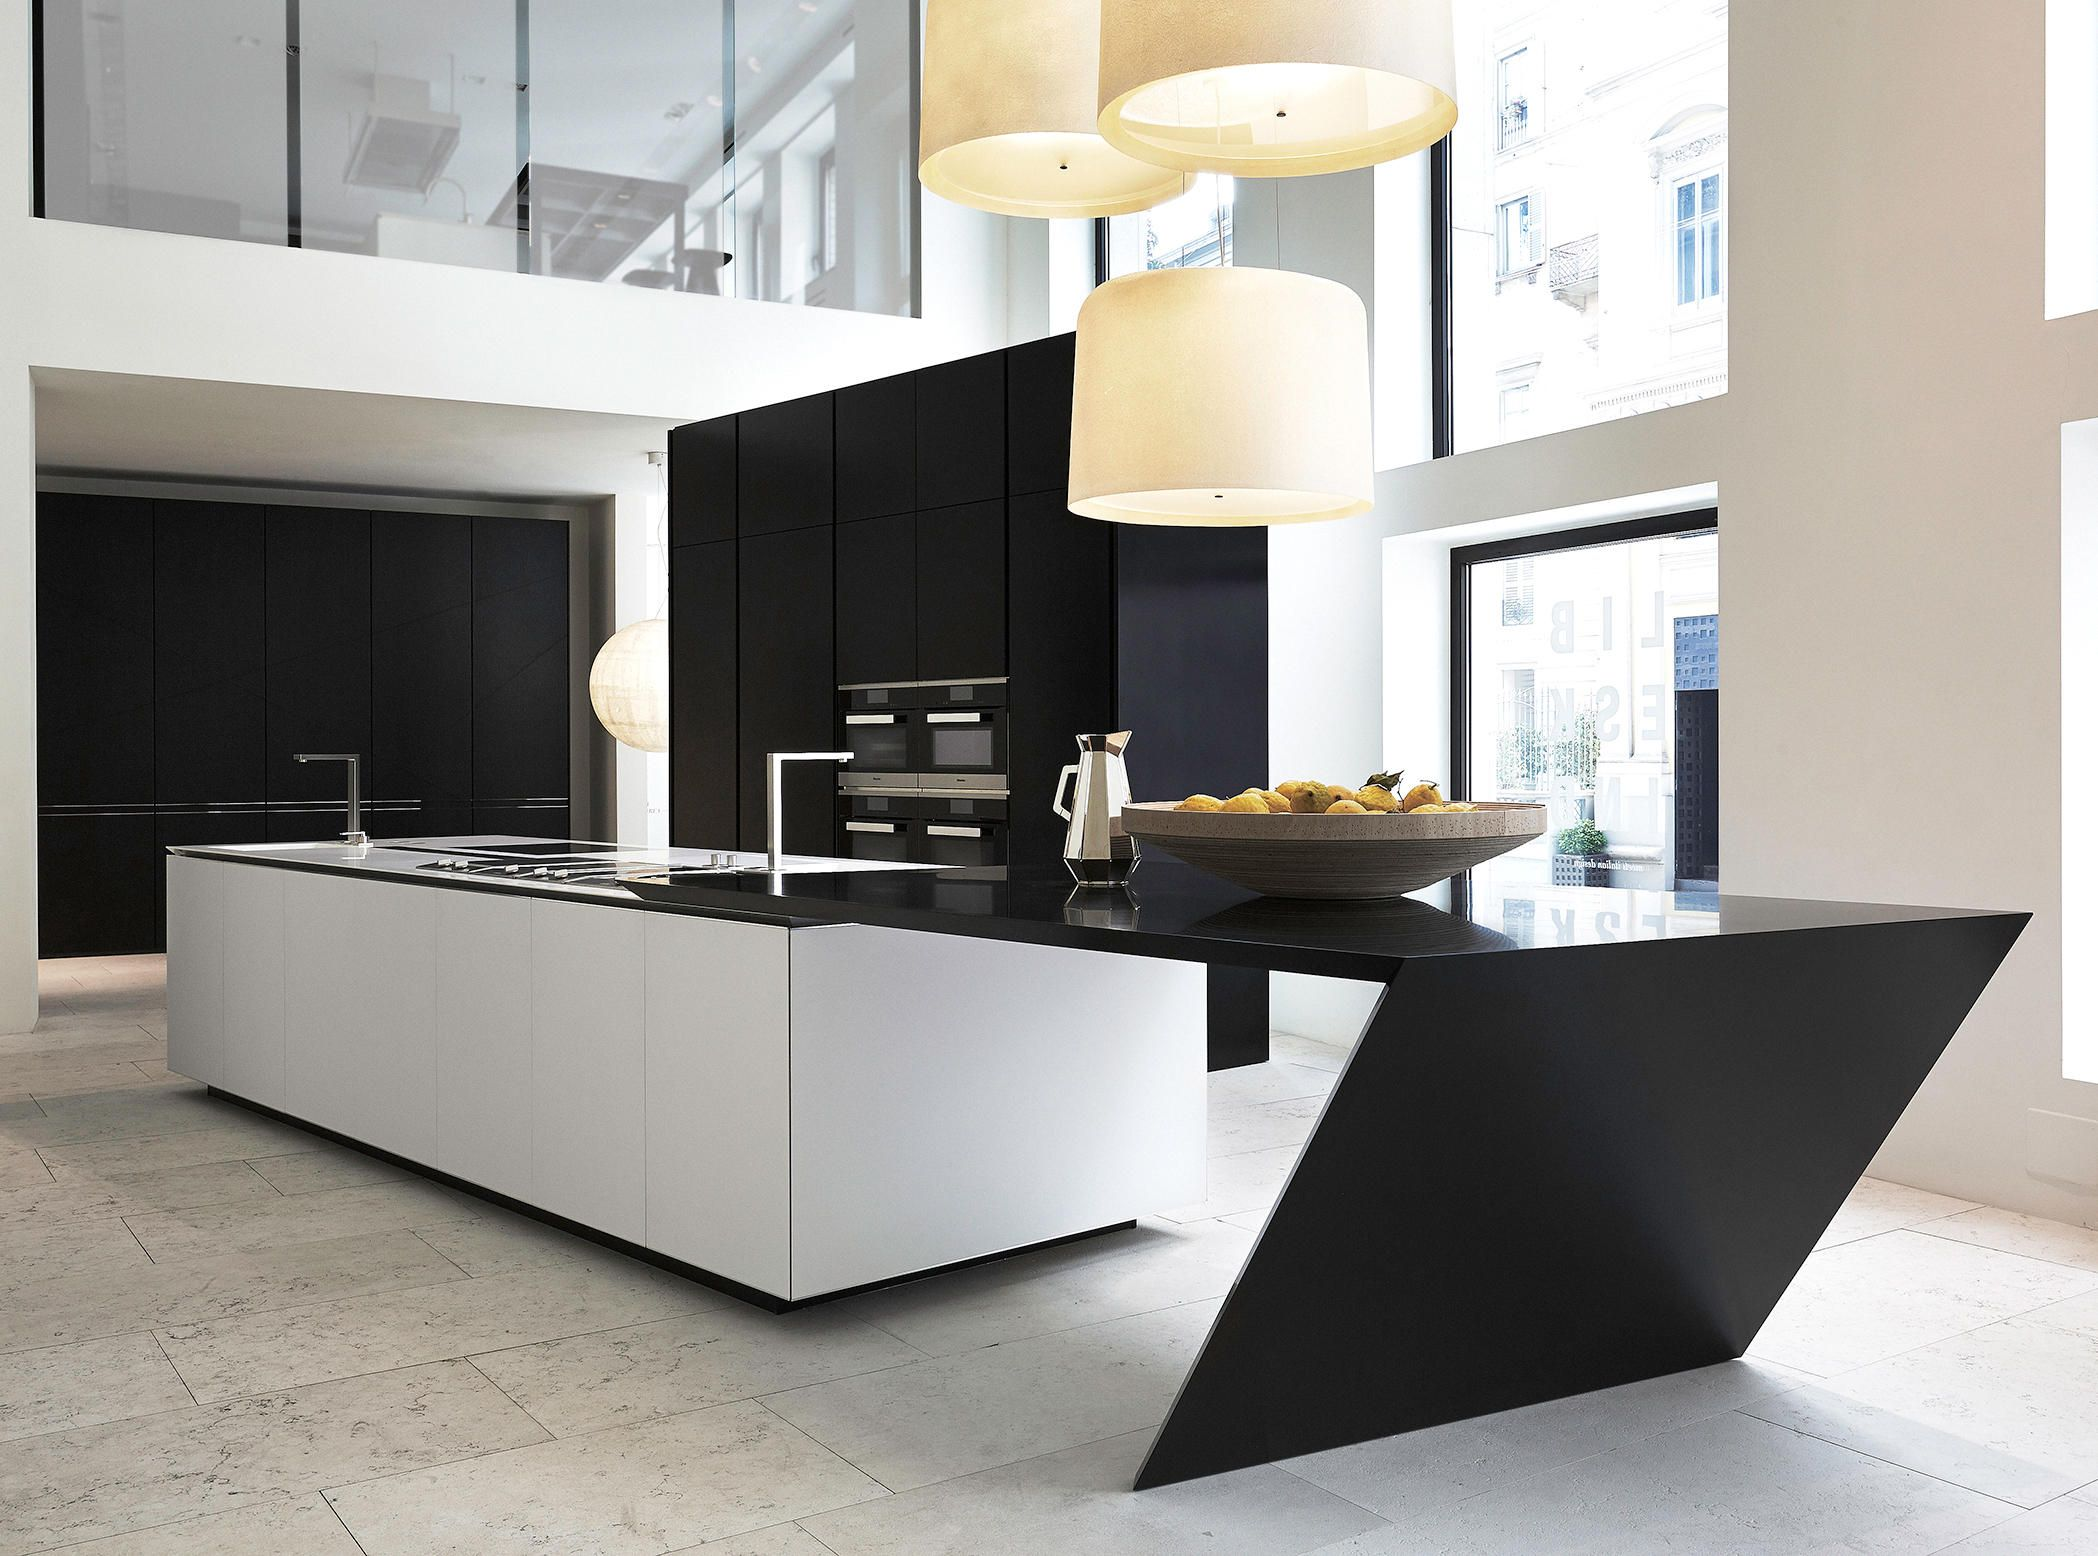 The Sharp kitchen by Poliform Varenna design Daniel Libeskind. It ...